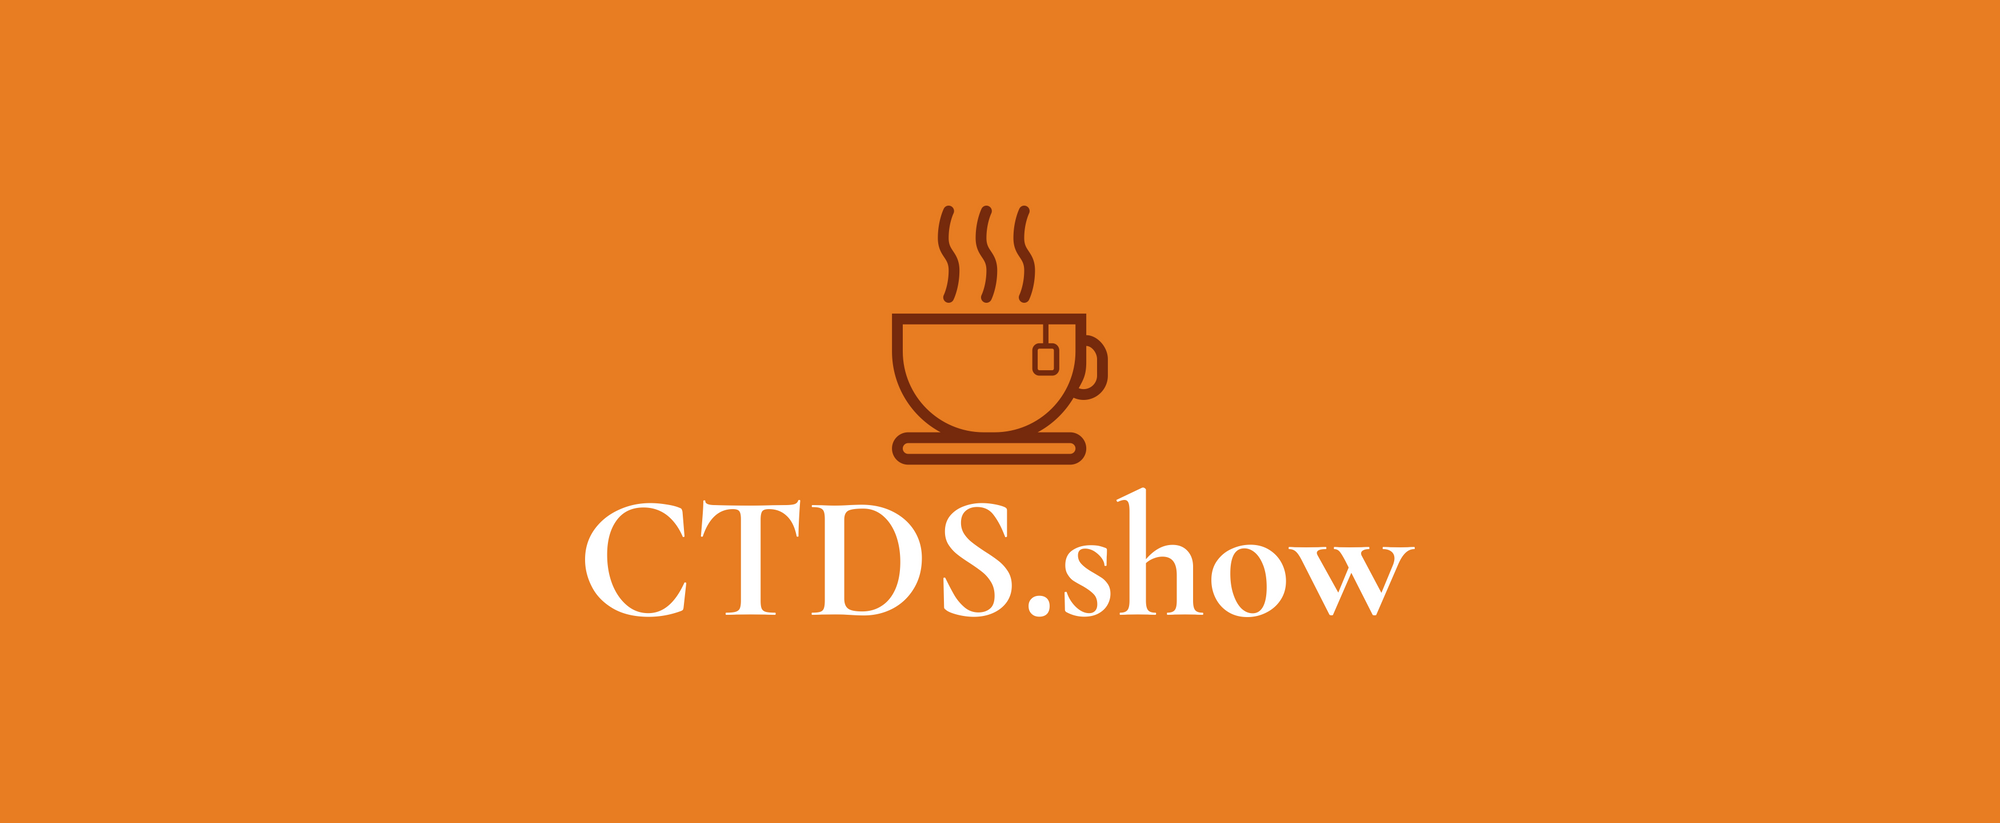 Chai Time Data Science Show Announcement